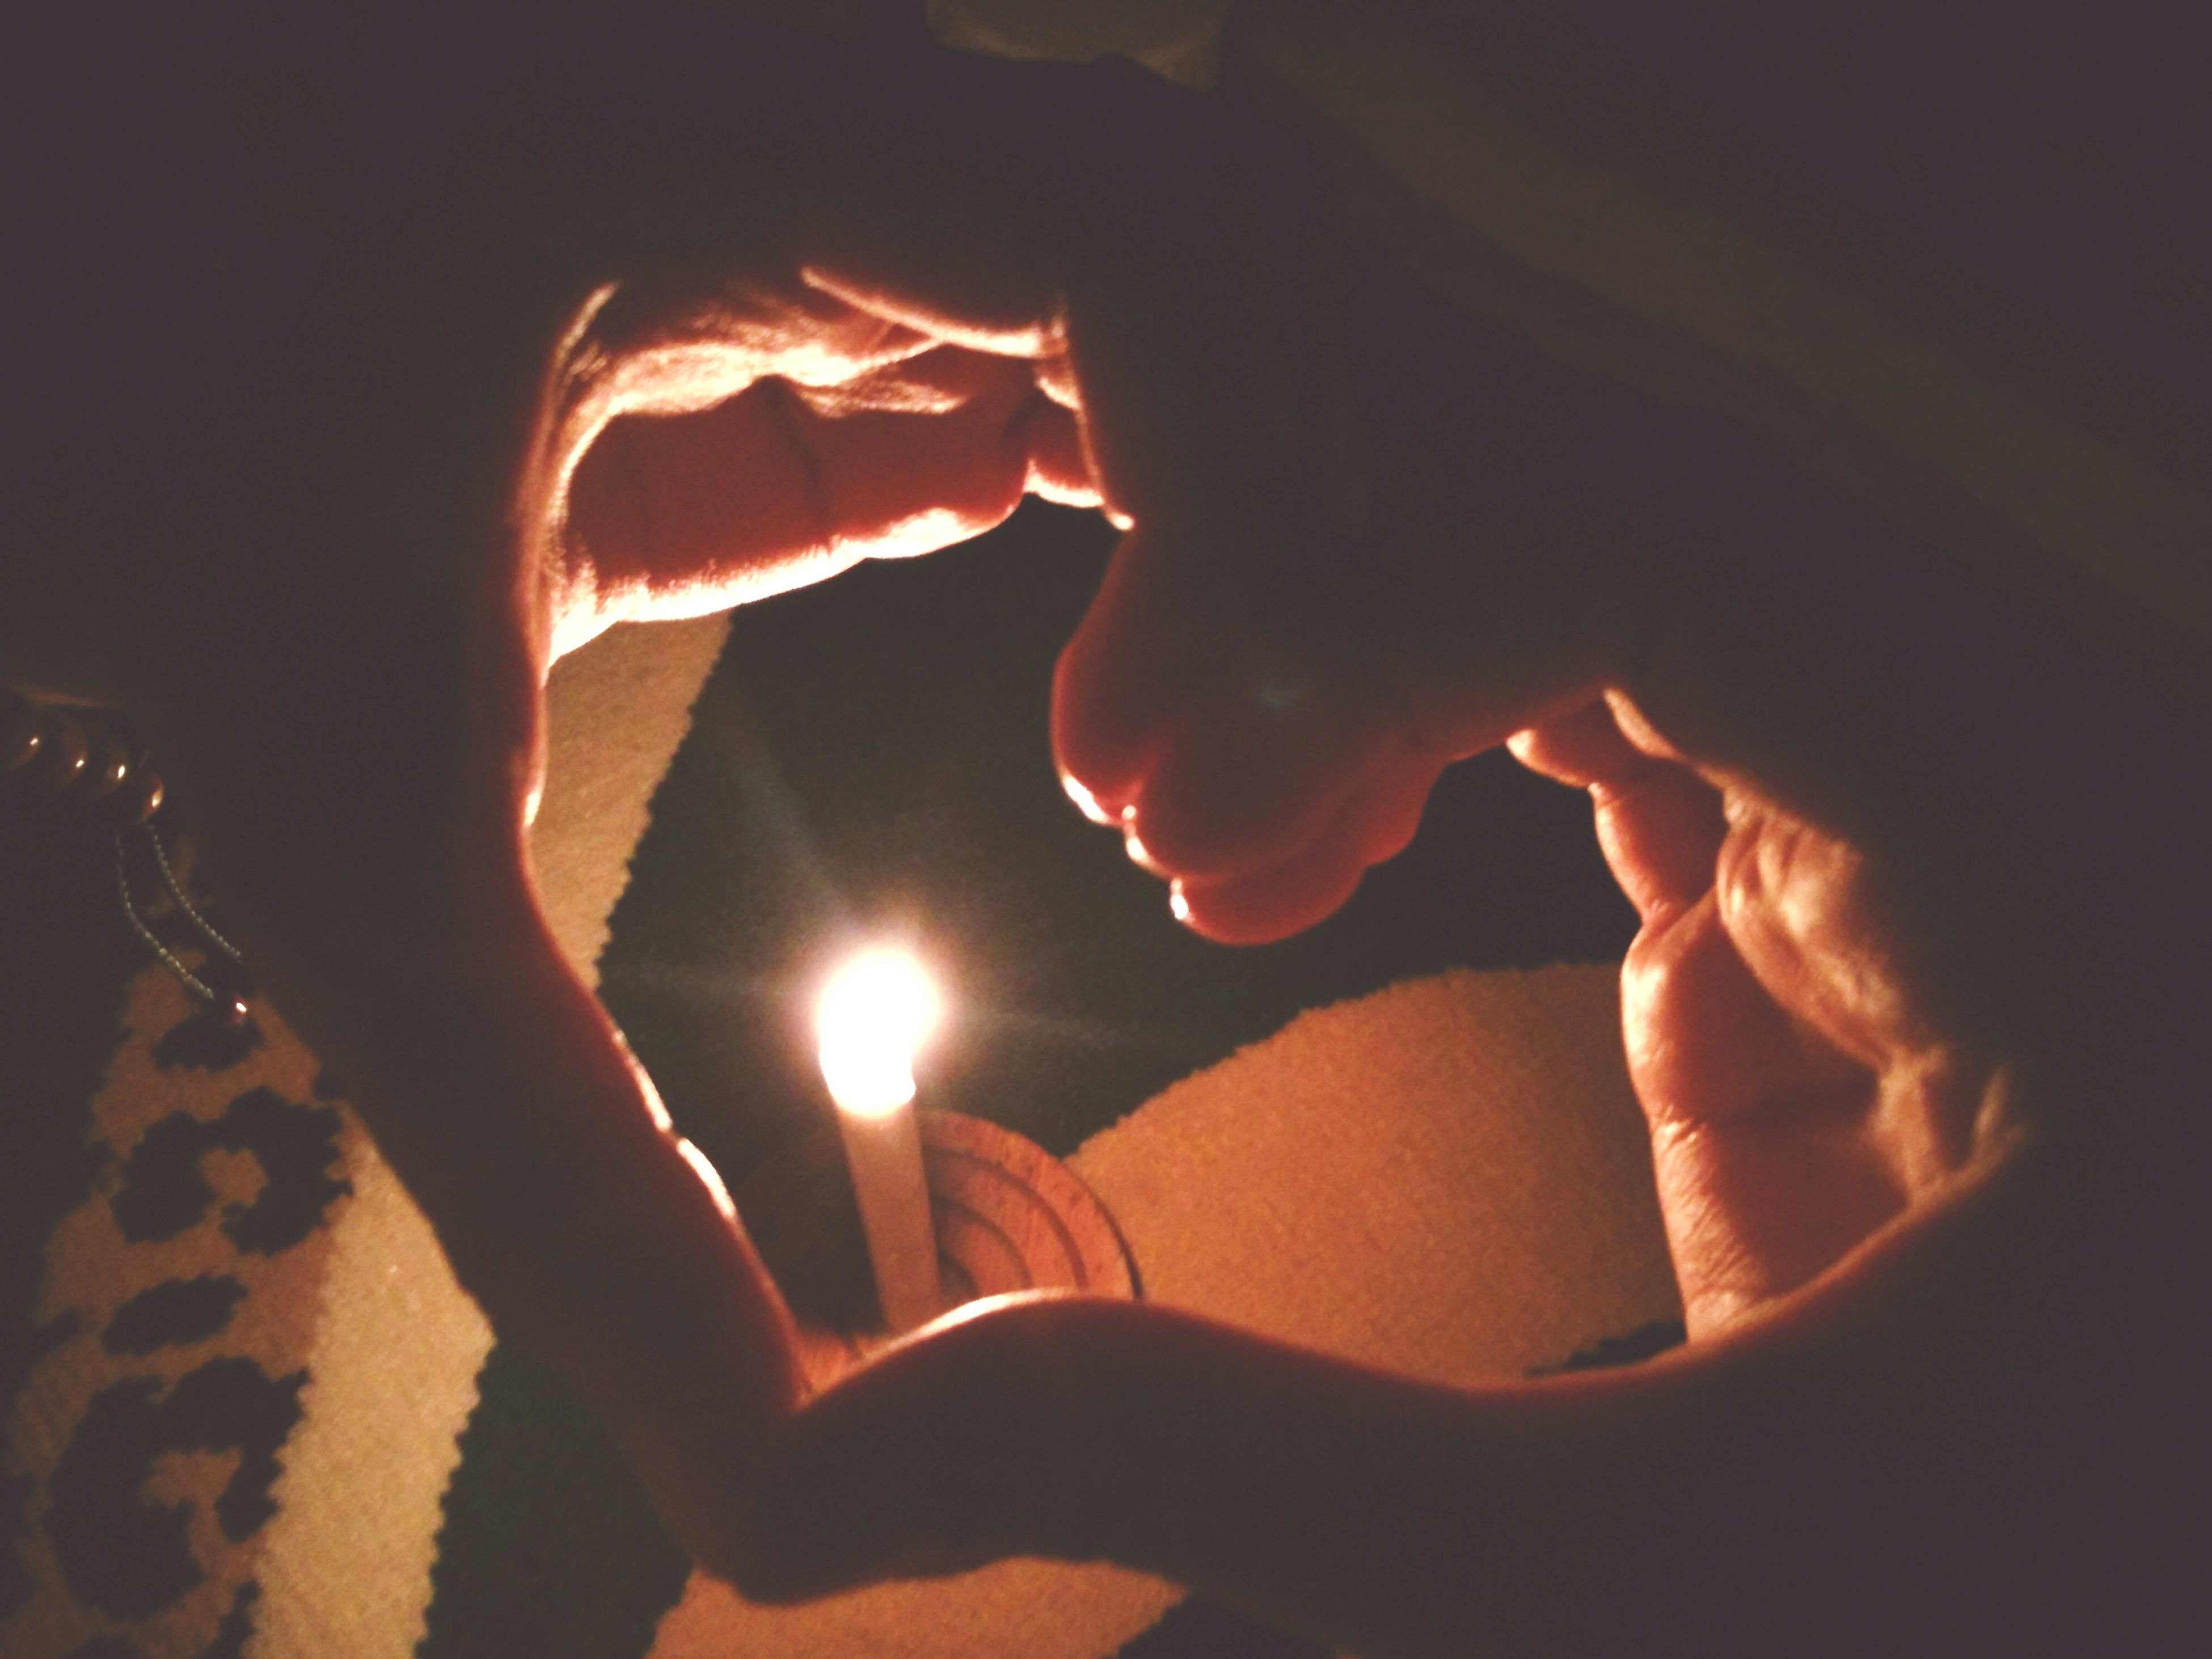 indoors, person, lifestyles, leisure activity, burning, flame, close-up, night, men, heat - temperature, part of, love, glowing, dark, fire - natural phenomenon